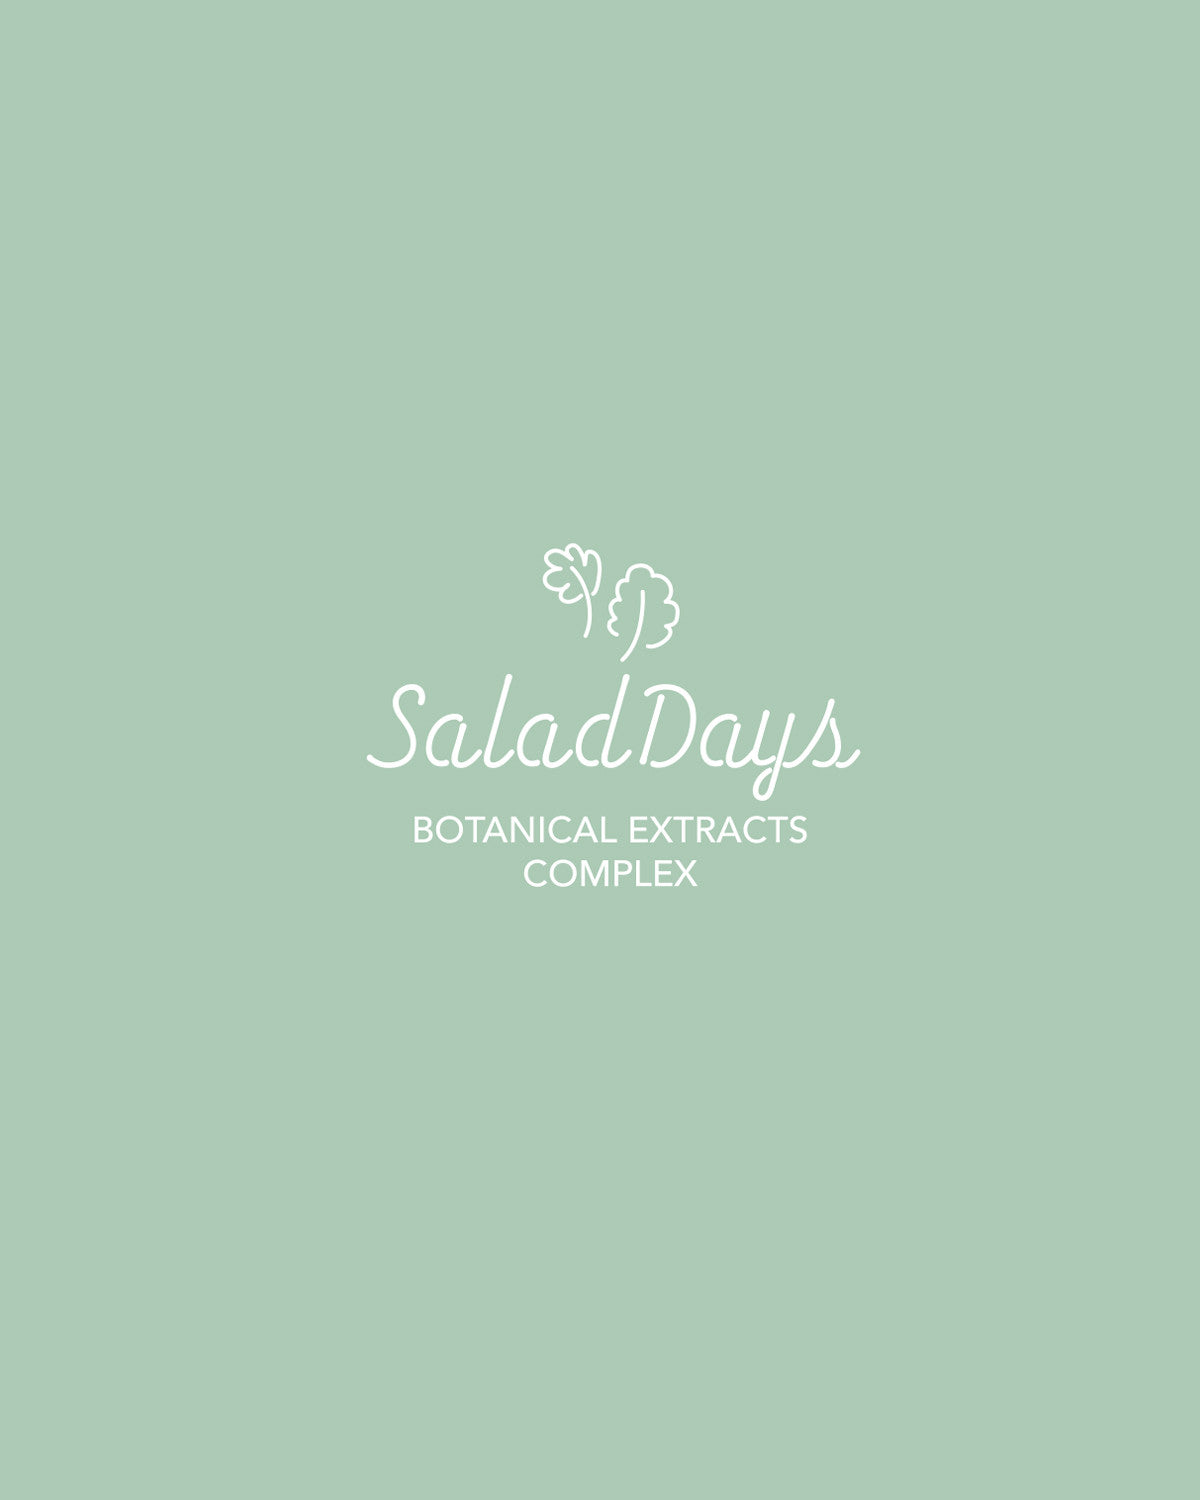 Salad Days!  A No Rinse cleansing water than can be used as a toner to create a clean surface for makeup in the morning and also can be used as a cleansing water to remove makeup, oil, and impurities at night. Botanical extracts such as Eucalytus Leaf Extract, Tea Tree Leaf Extract, and Origanum Majorana Leaf Extract soothe and moisturize skin while cleansing skin gently and perfectly!